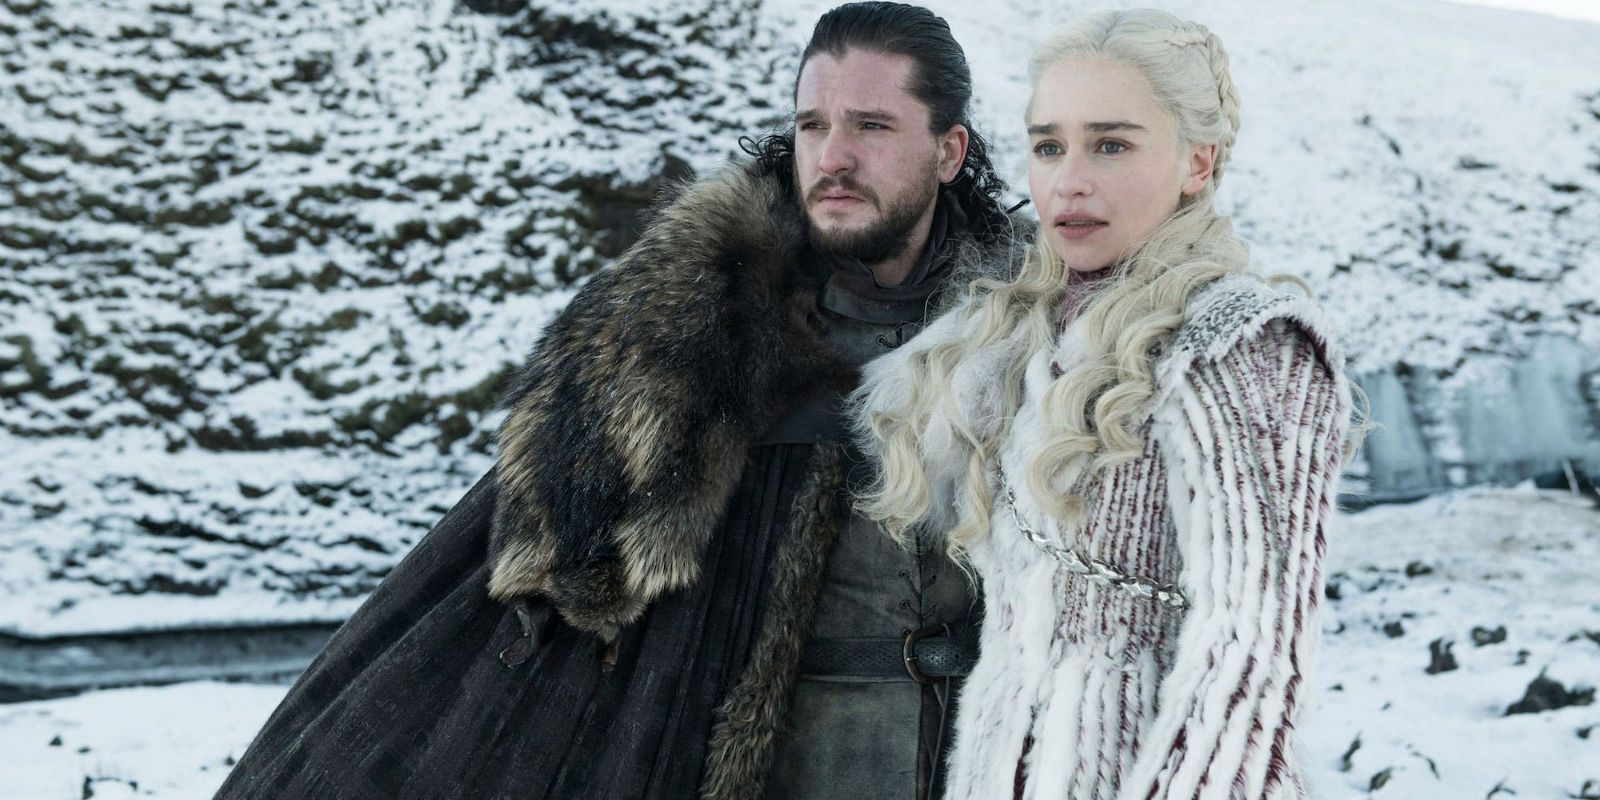 10 Fantasy Shows To Watch On Netflix While You Wait For GoT To Come Back